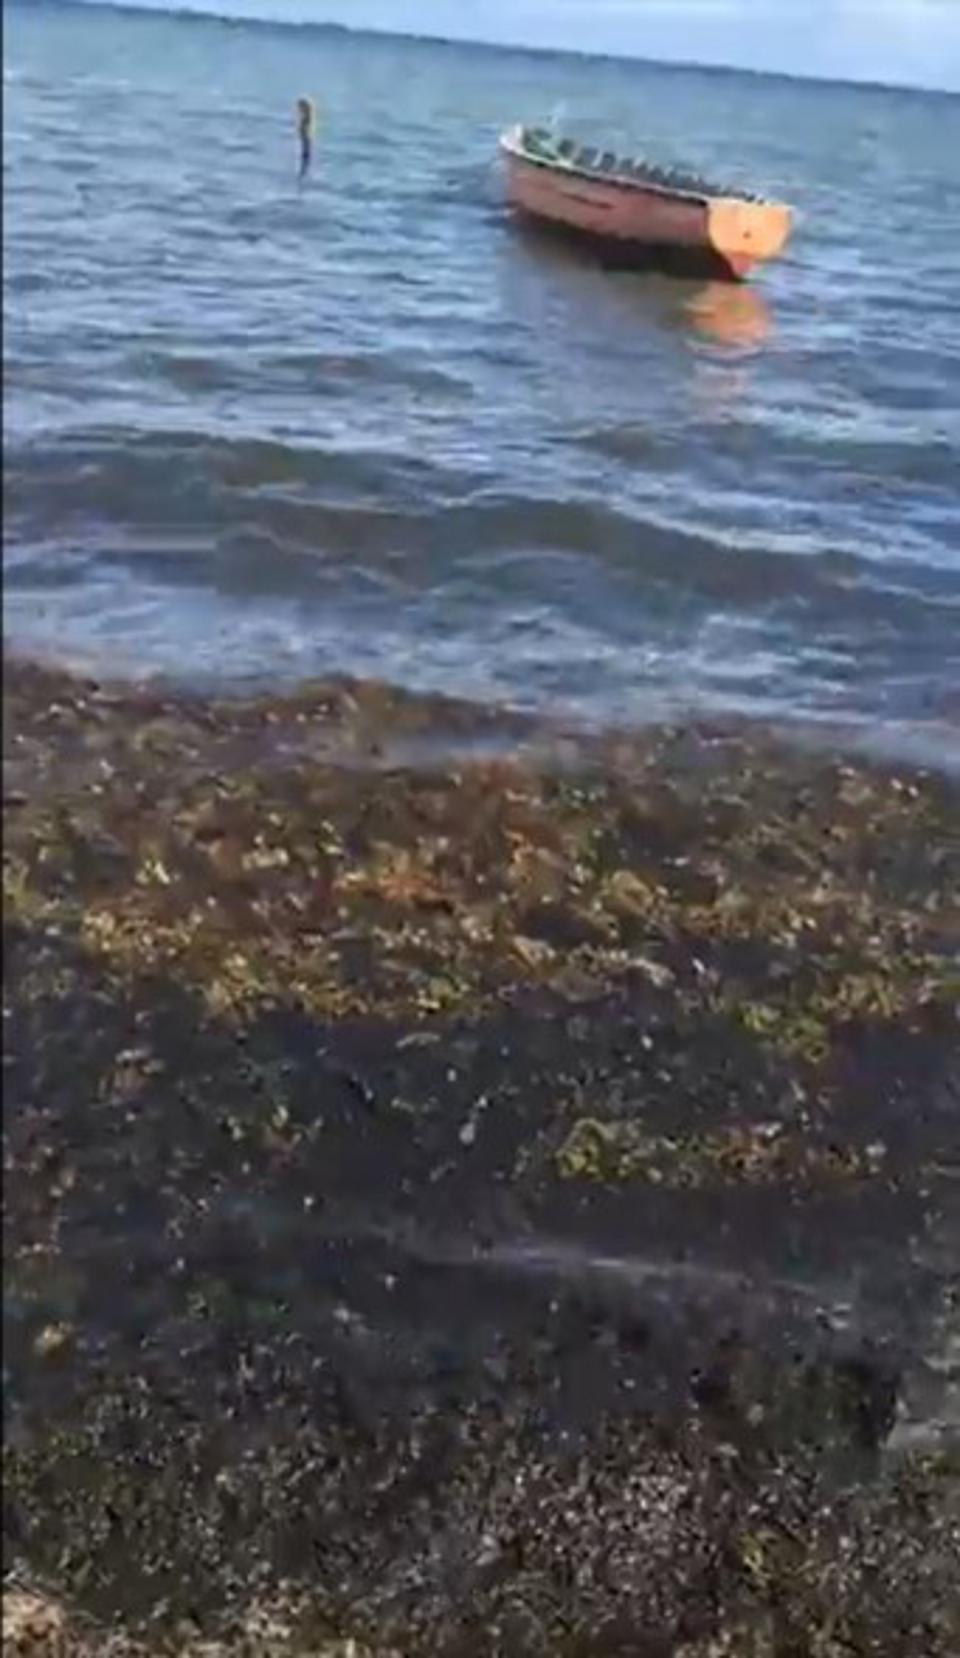 New algal blooms seen in Mauritius on January 5 at the site of beaches that had been drenched in oil since the August 2020 oil spill